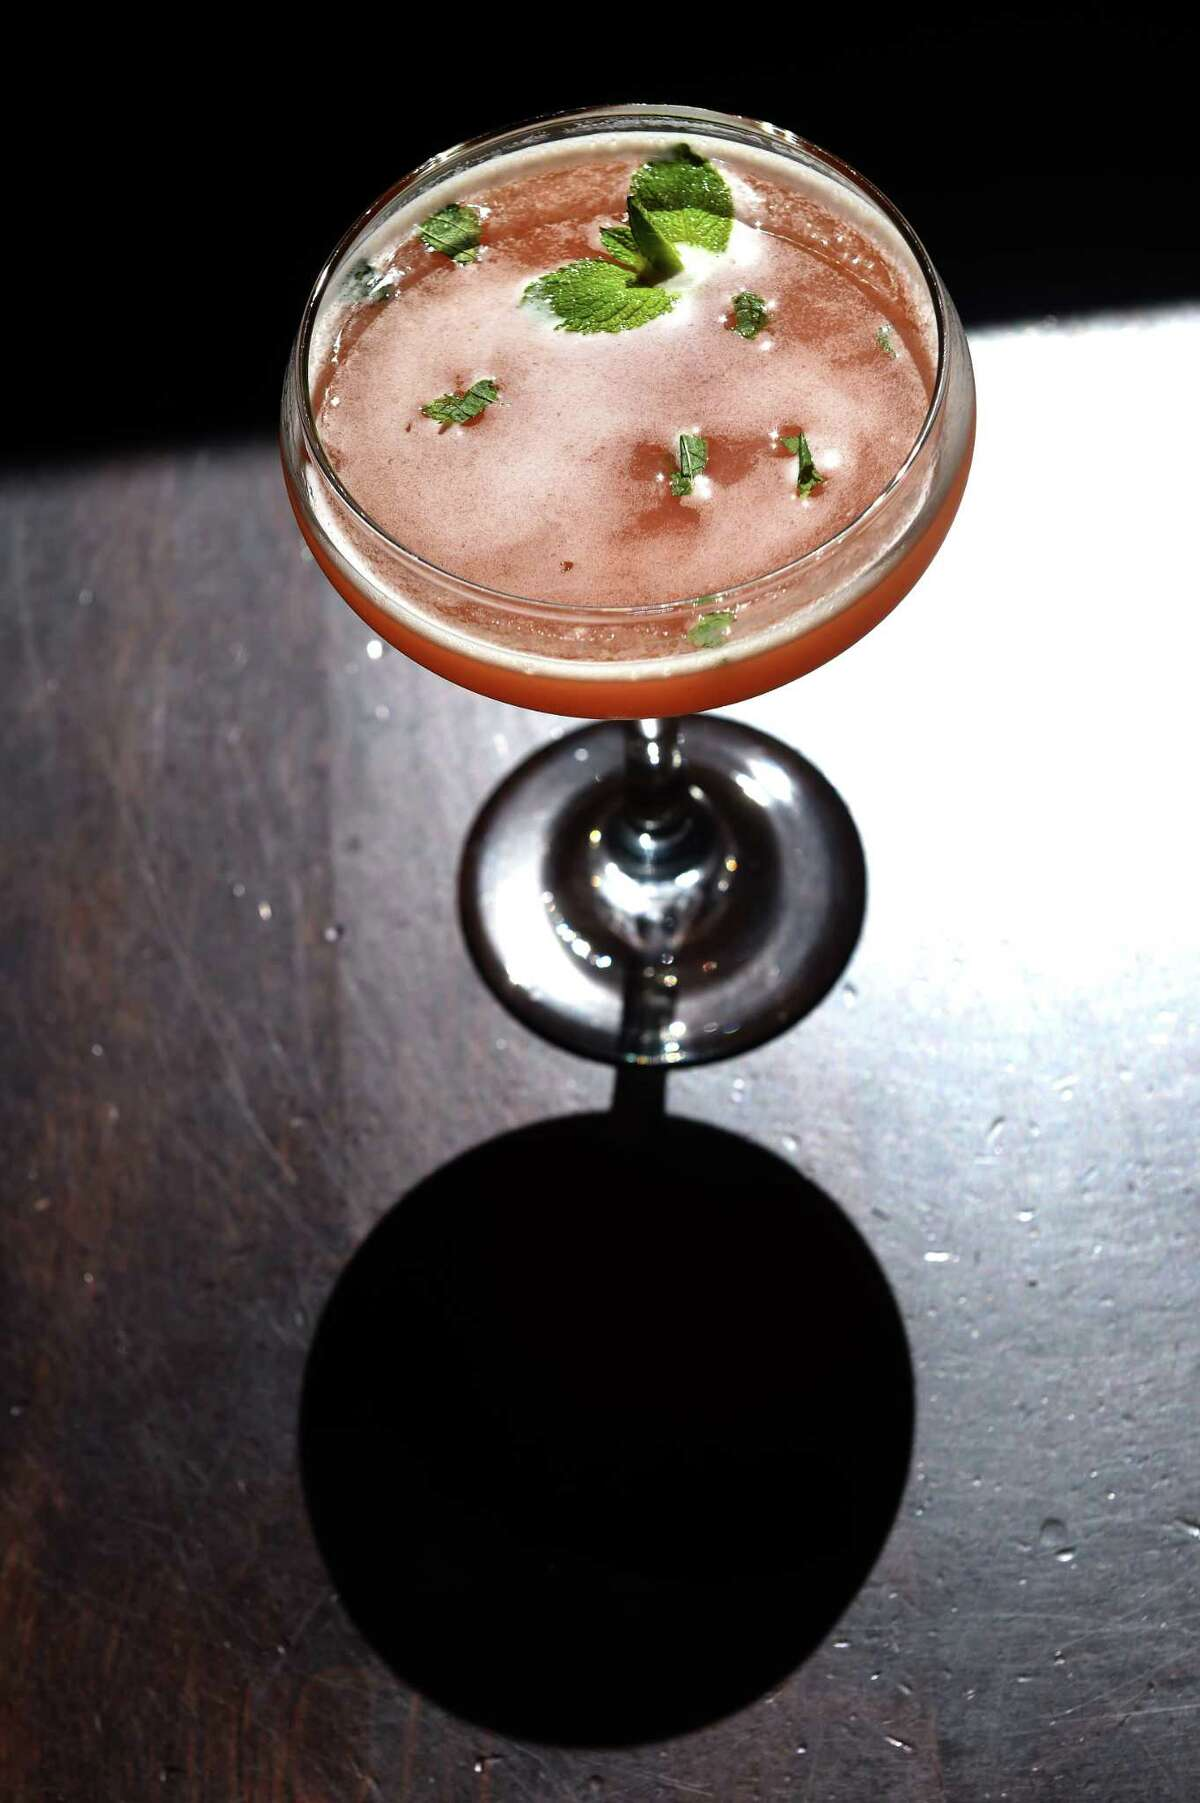 New Haven's Prime 16 signature craft cocktail, Grapefruit Classico, containing vodka, grapefruit juice fresh mint and a dash of lime.